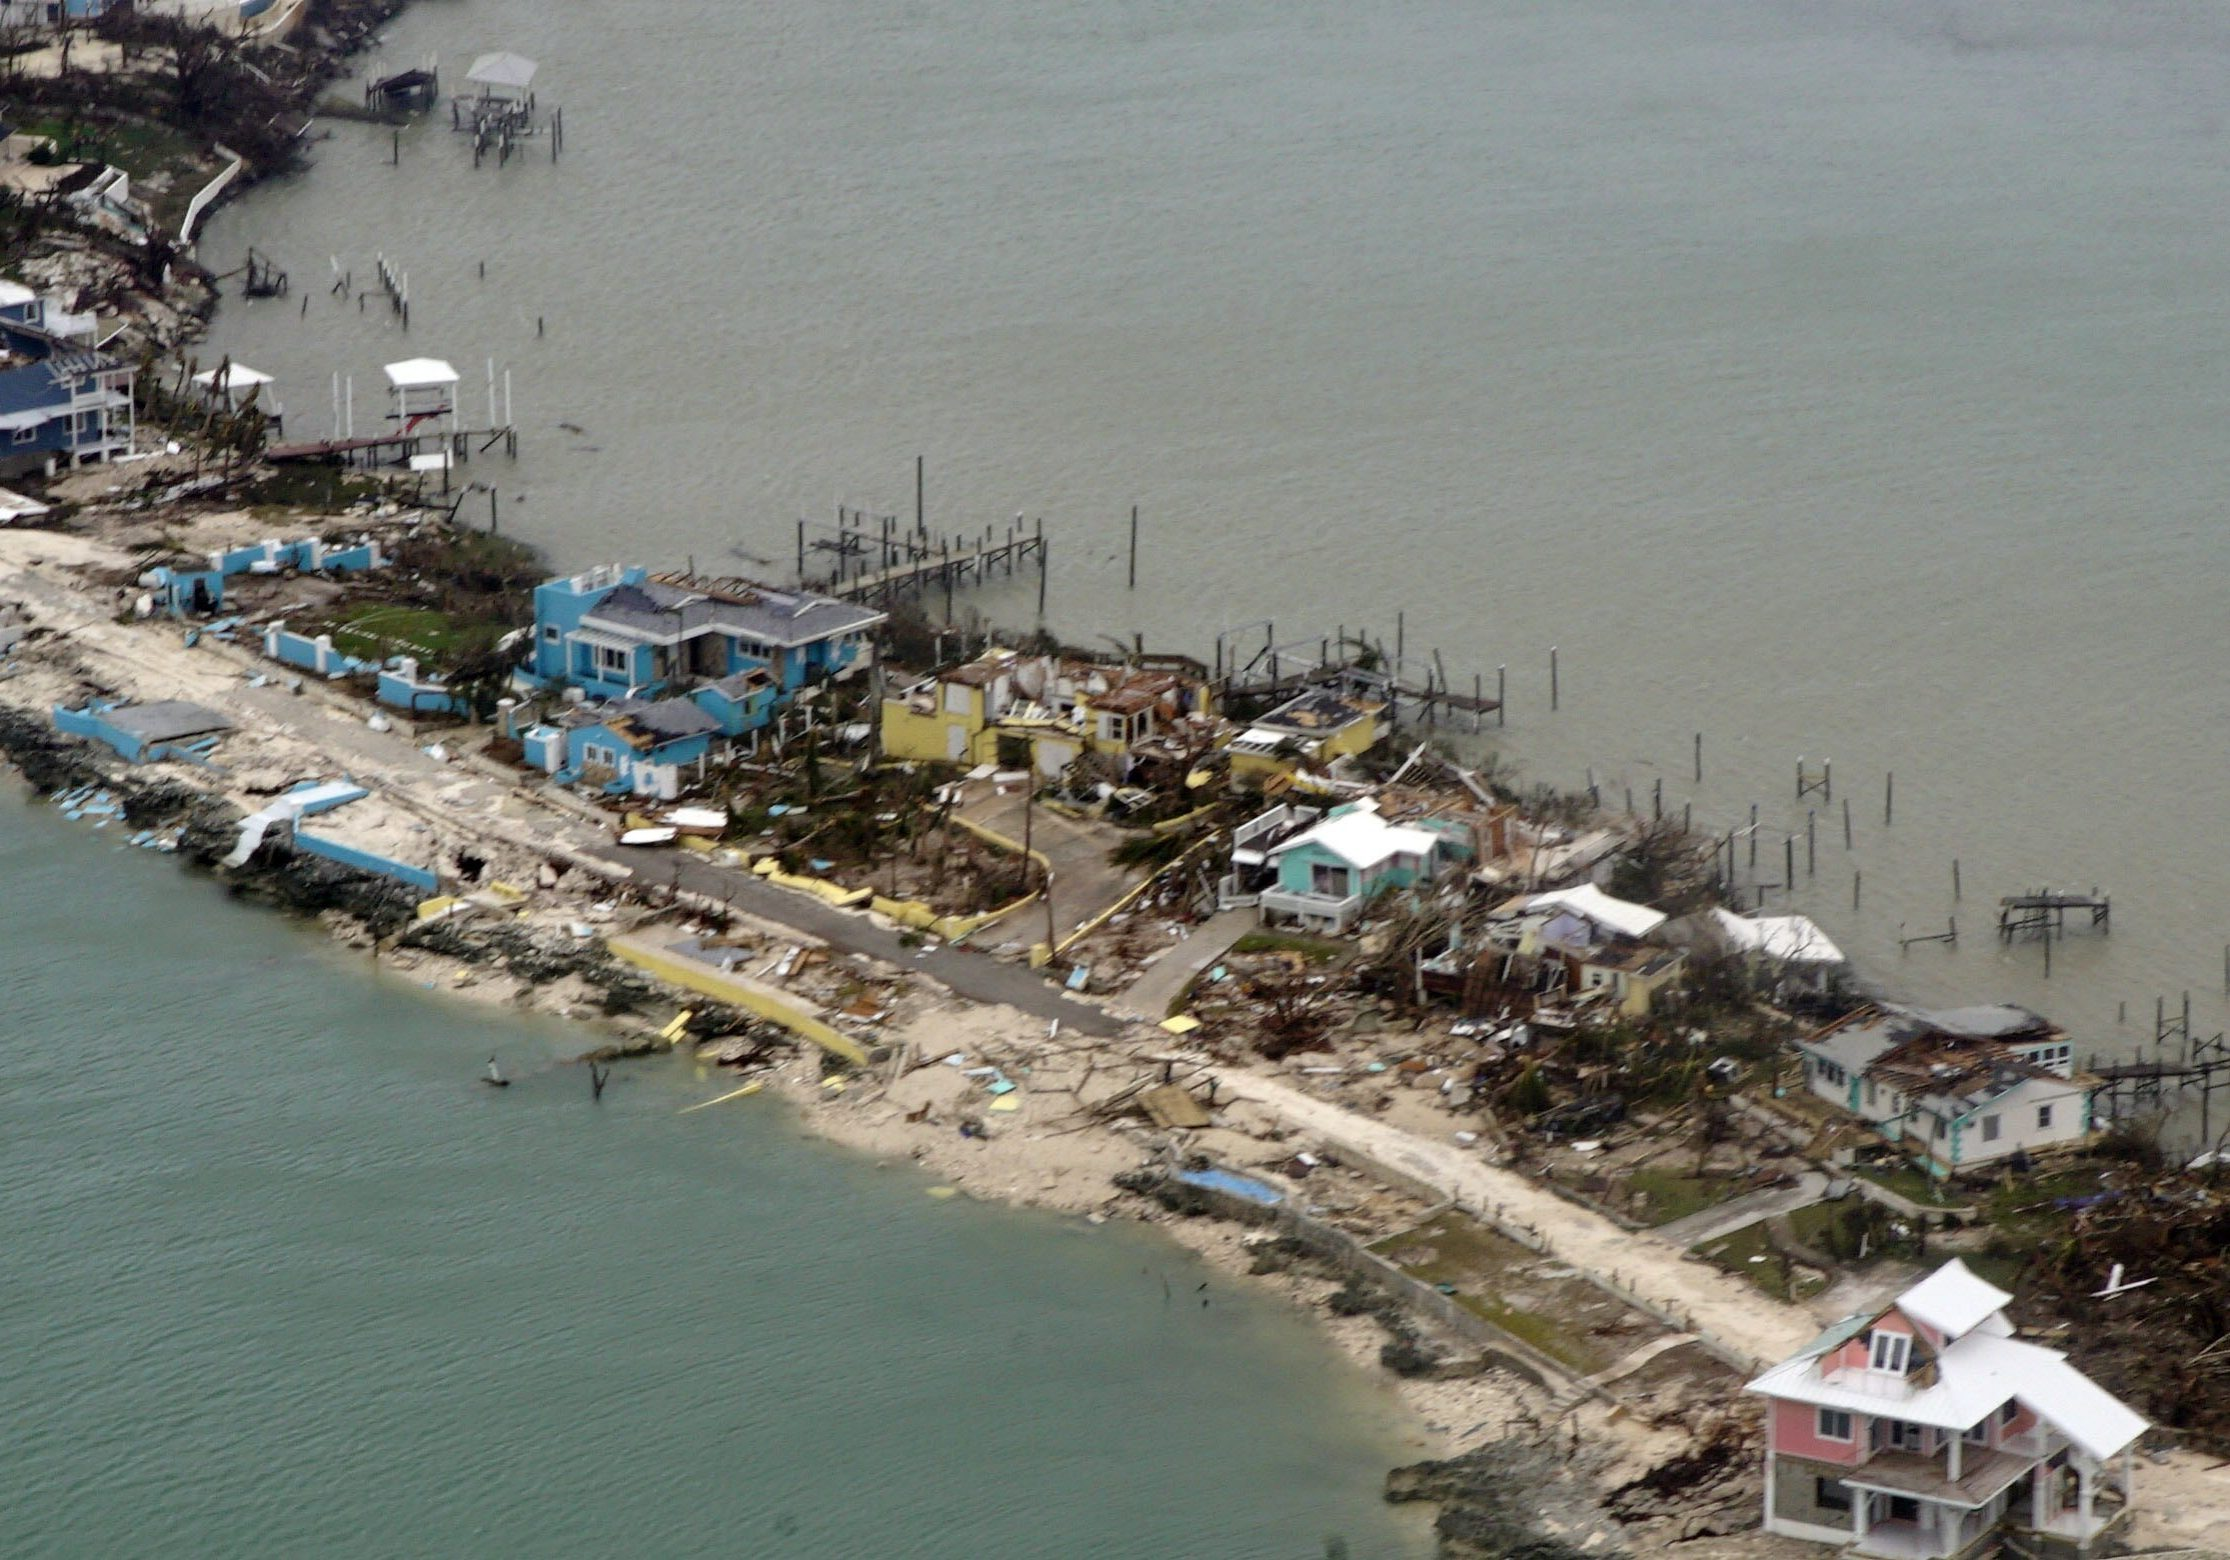 Overhead view of a row of damaged structures in the Bahamas from a Coast Guard Elizabeth City C-130 aircraft after Hurricane Dorian shifts north Sept. 3, 2019. Hurricane Dorian made landfall Saturday and intensified into Sunday. U.S. Coast Guard photo by Petty Officer 2nd Class Adam Stanton.